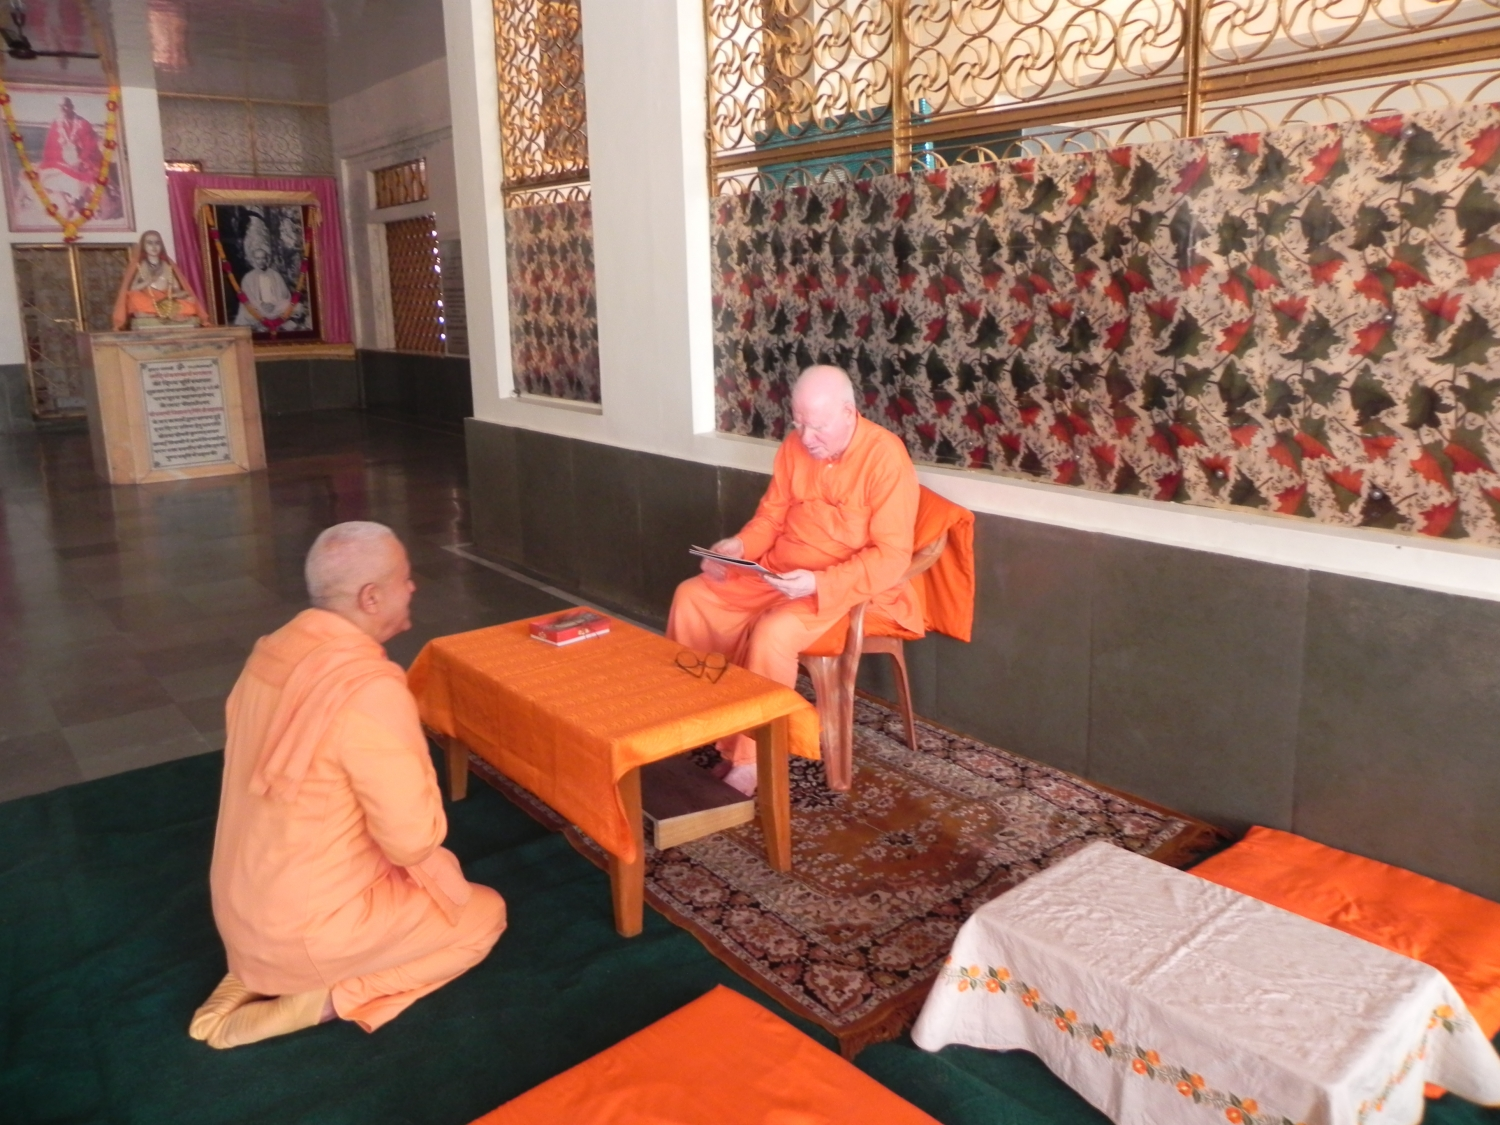 Encontro de H.H. Jagat Guru Amrta Súryánanda Mahá Rája com H.H. Svāmin Vimlānanda Sarasvatī Mahā Rāja - Shivānanda Āshrama, rshikesh, Índia - 2011, Outubro